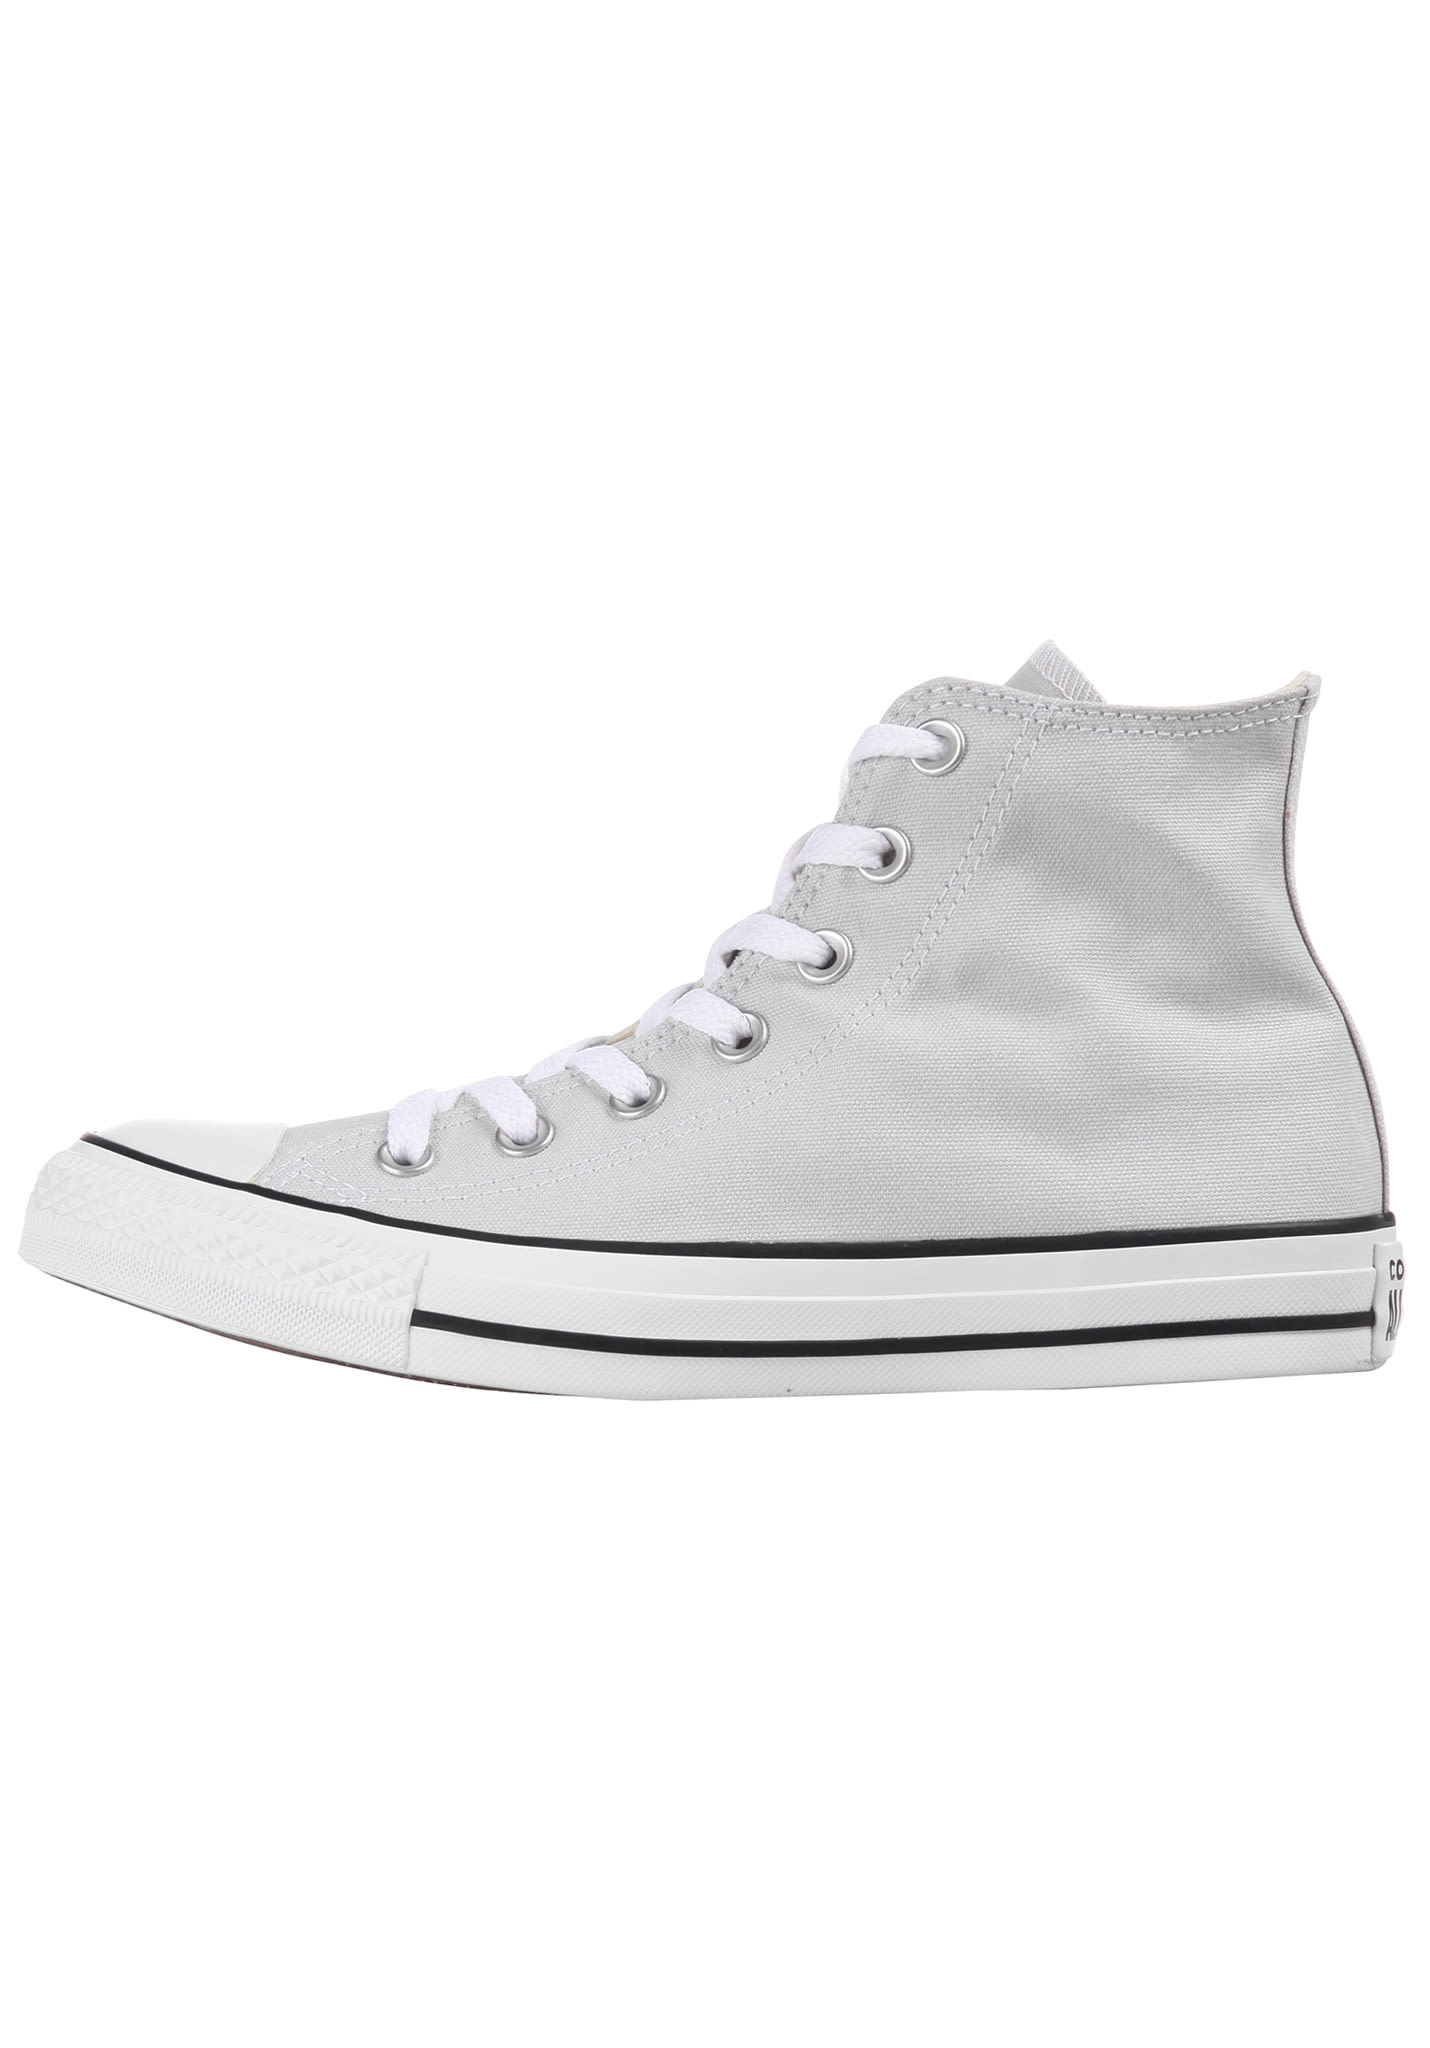 cbac08fd6db8 Converse Chuck Taylor All Star Hi Mouse - Sneakers - Grey - Planet Sports